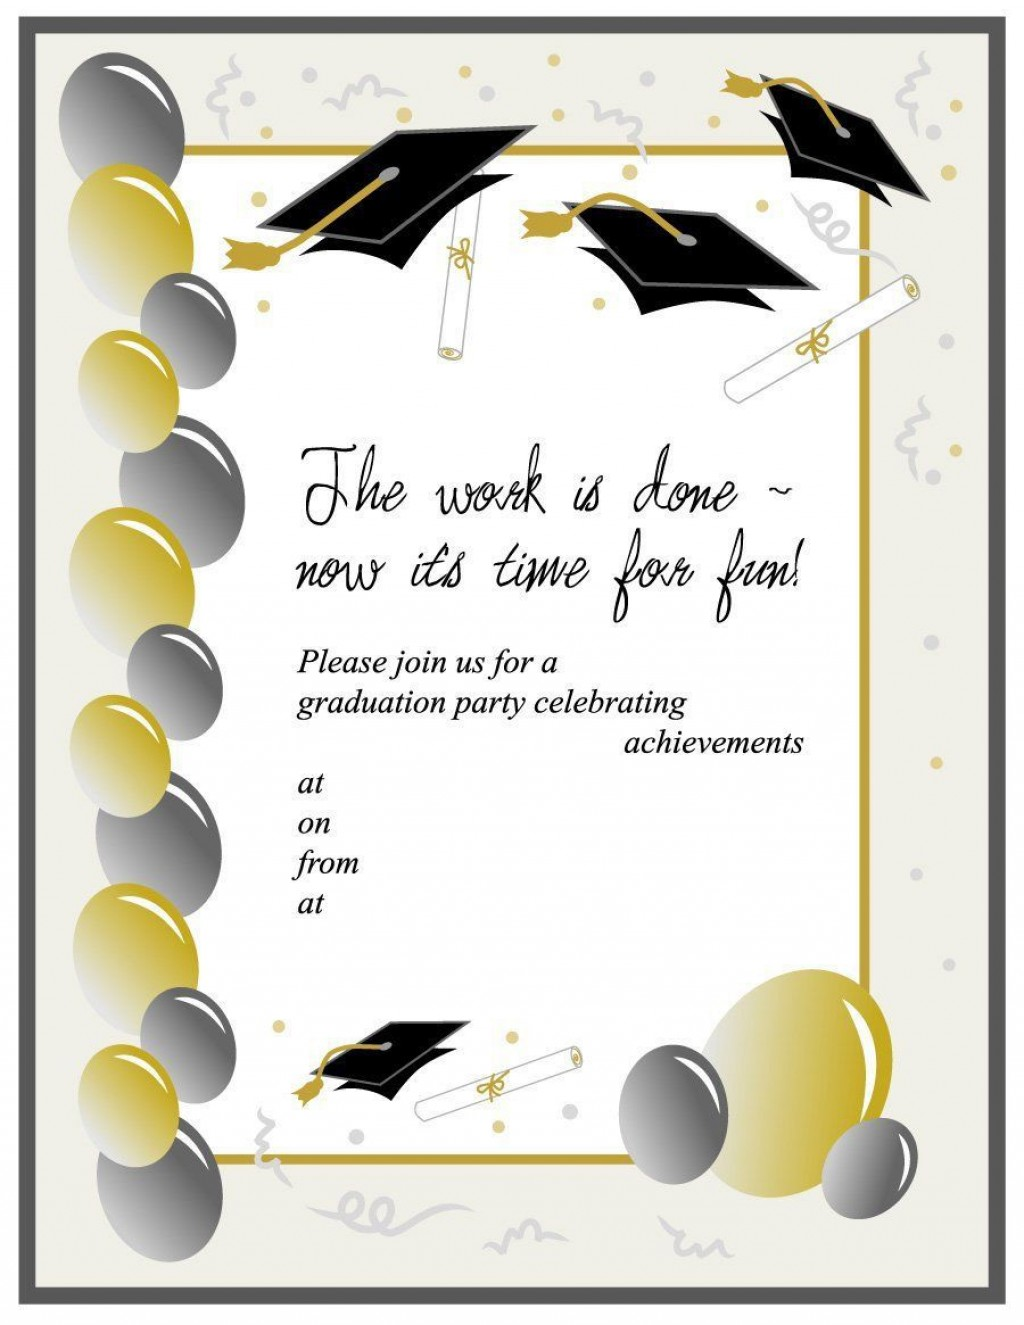 003 Outstanding Free Graduation Announcement Template Idea  Invitation Microsoft Word Printable KindergartenLarge